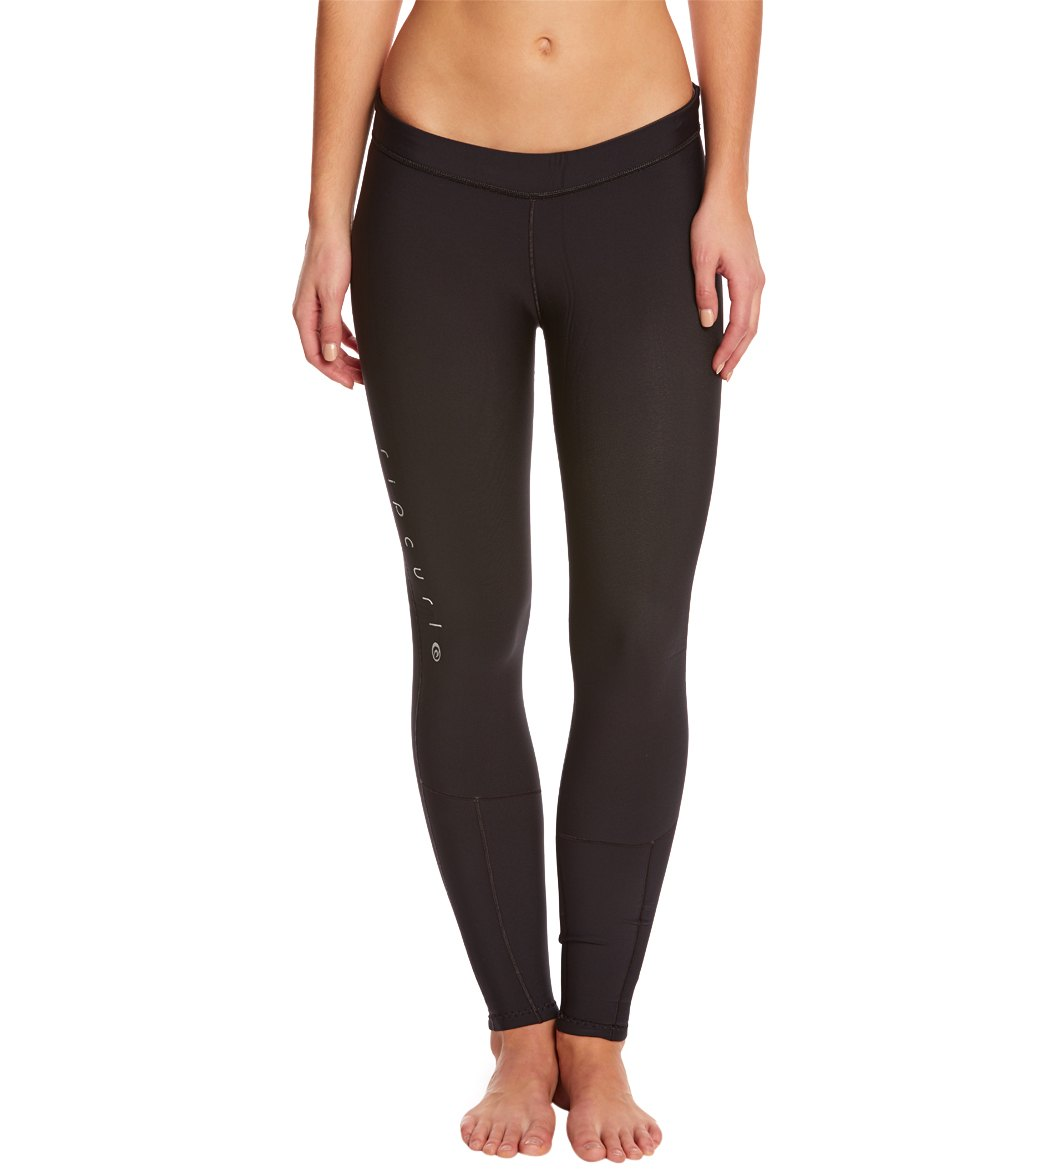 Rip Curl Women s 1mm G-Bomb Wetsuit Pant at SwimOutlet.com - Free Shipping c7d374dd9